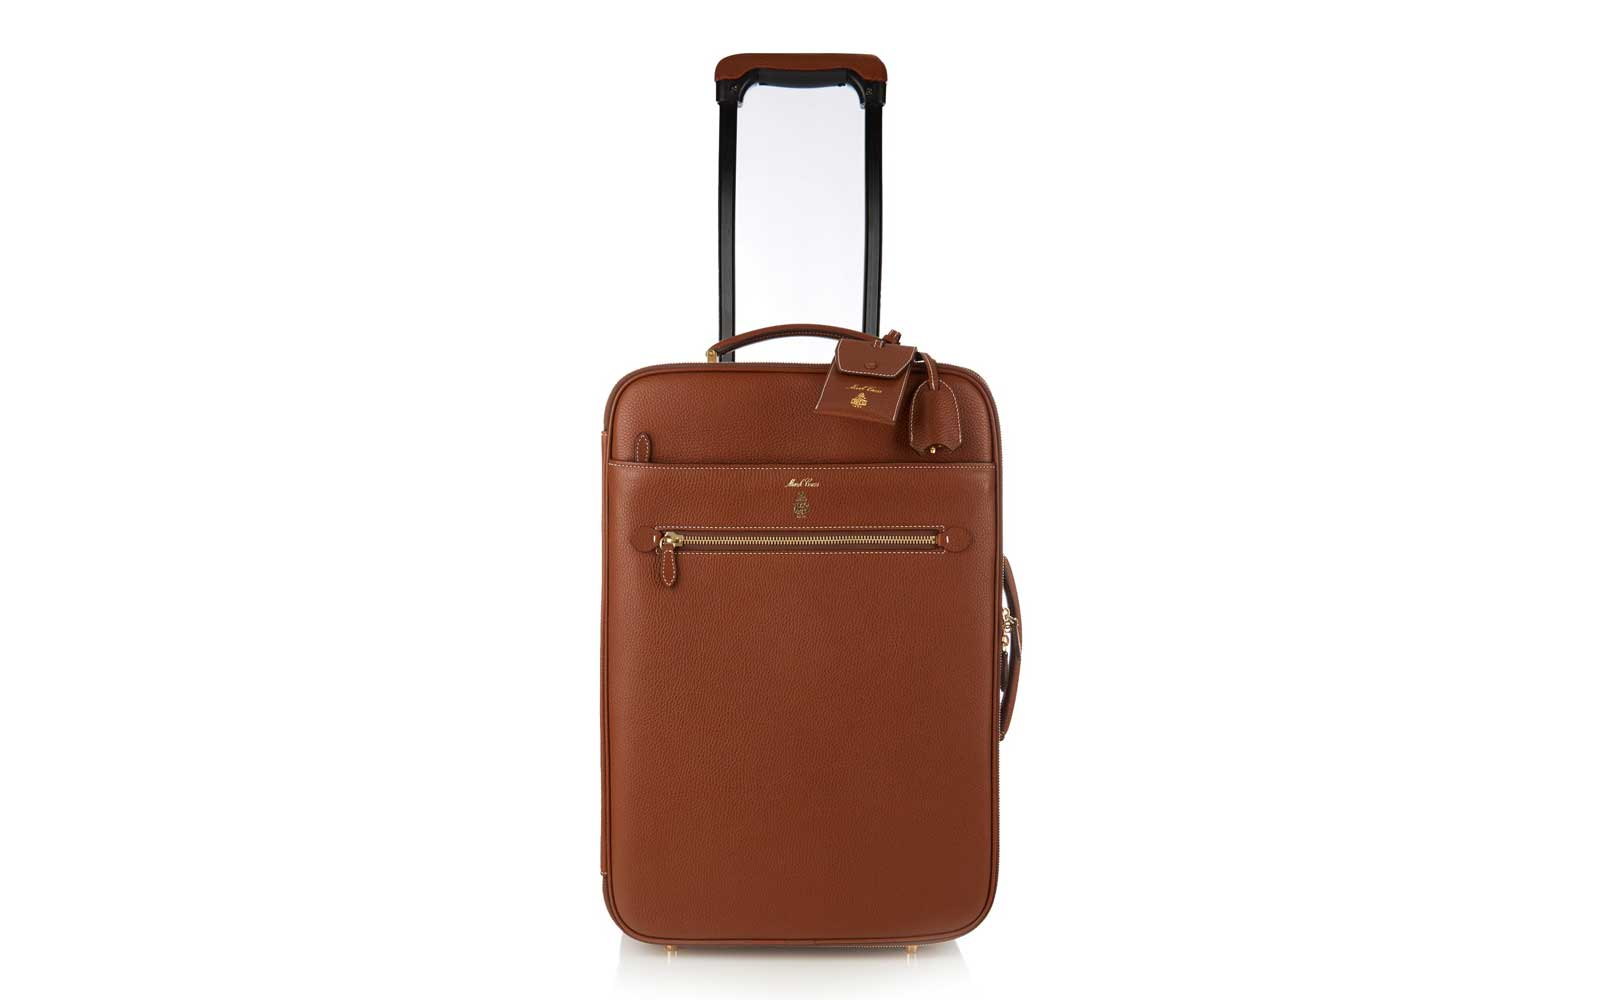 The Luggage: Mark Cross carry-on suitcase